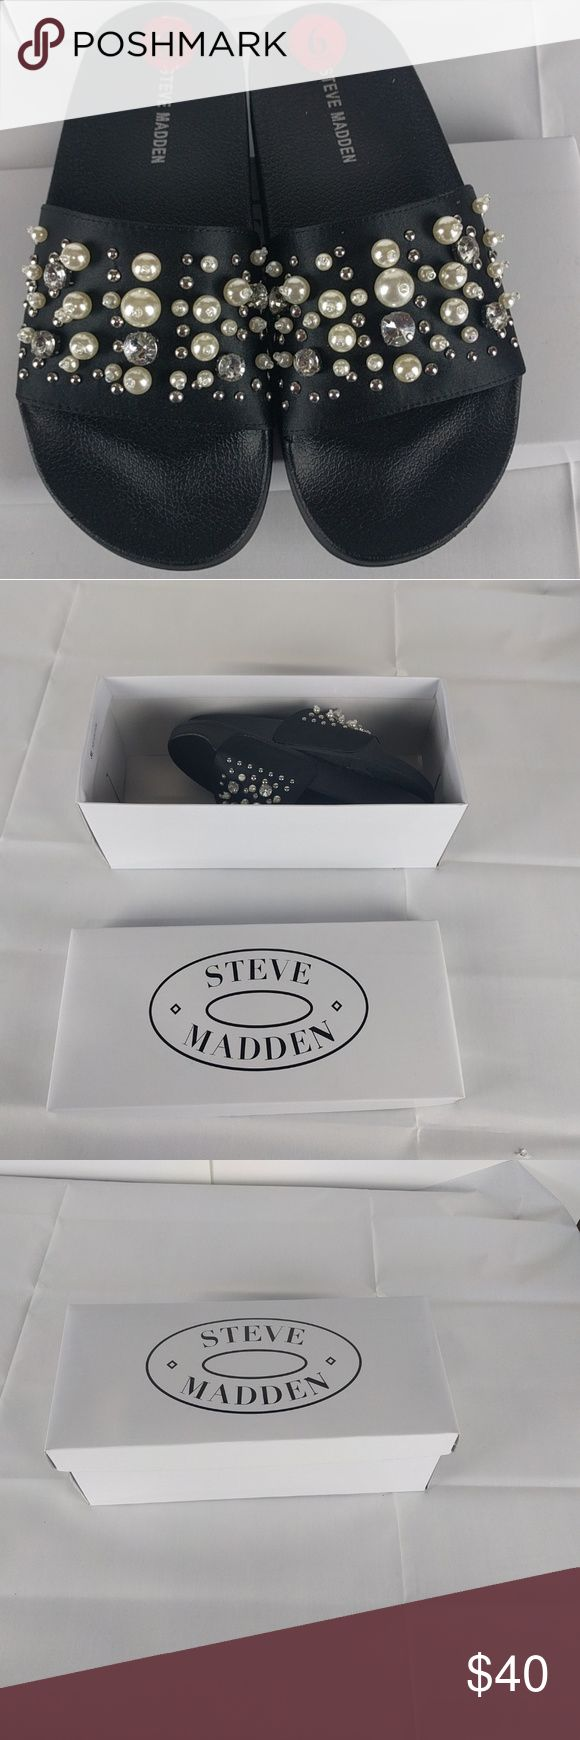 NWB Size 6 Steve Madden Sandals Black with Bling! Cute Steve Madden sandals! New with box. Note: these are new, but were used as a store display, so may have a few scuffs on the bottom from being tried on. Steve Madden Shoes Sandals